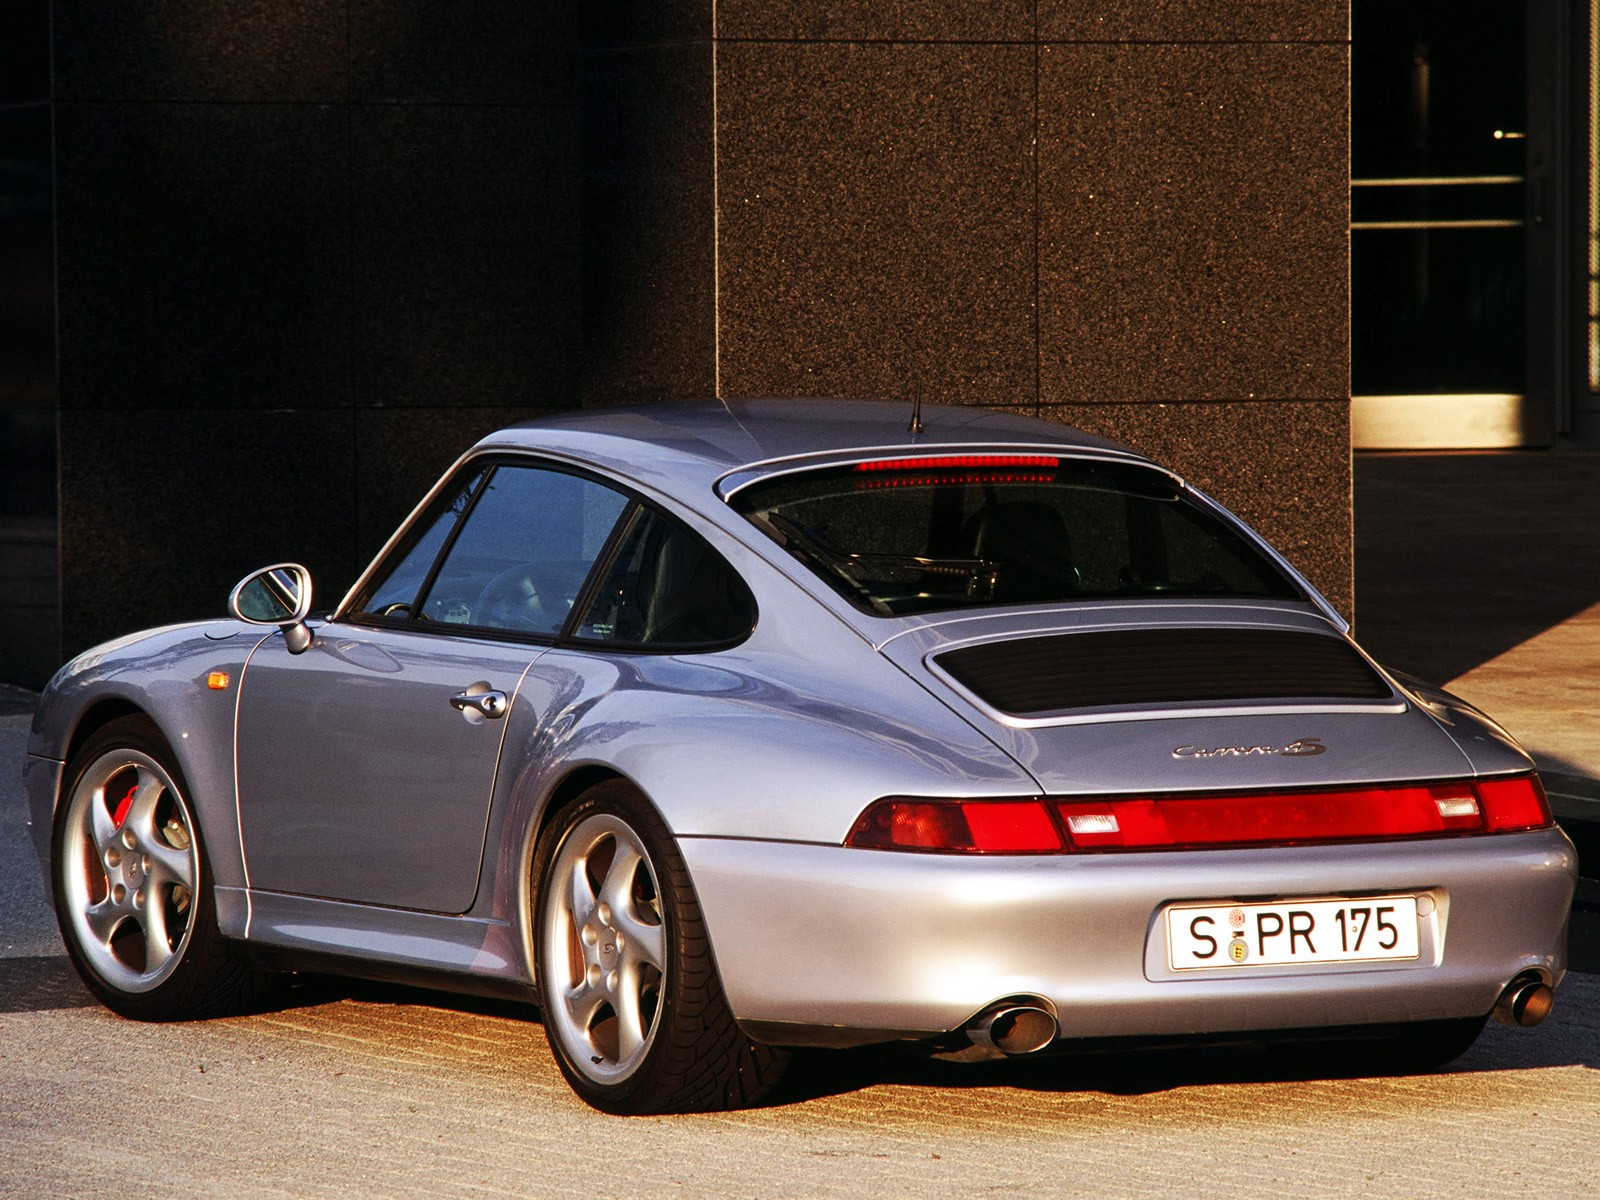 porsche 911 carrera 4s 993 specs 1995 1996 1997. Black Bedroom Furniture Sets. Home Design Ideas